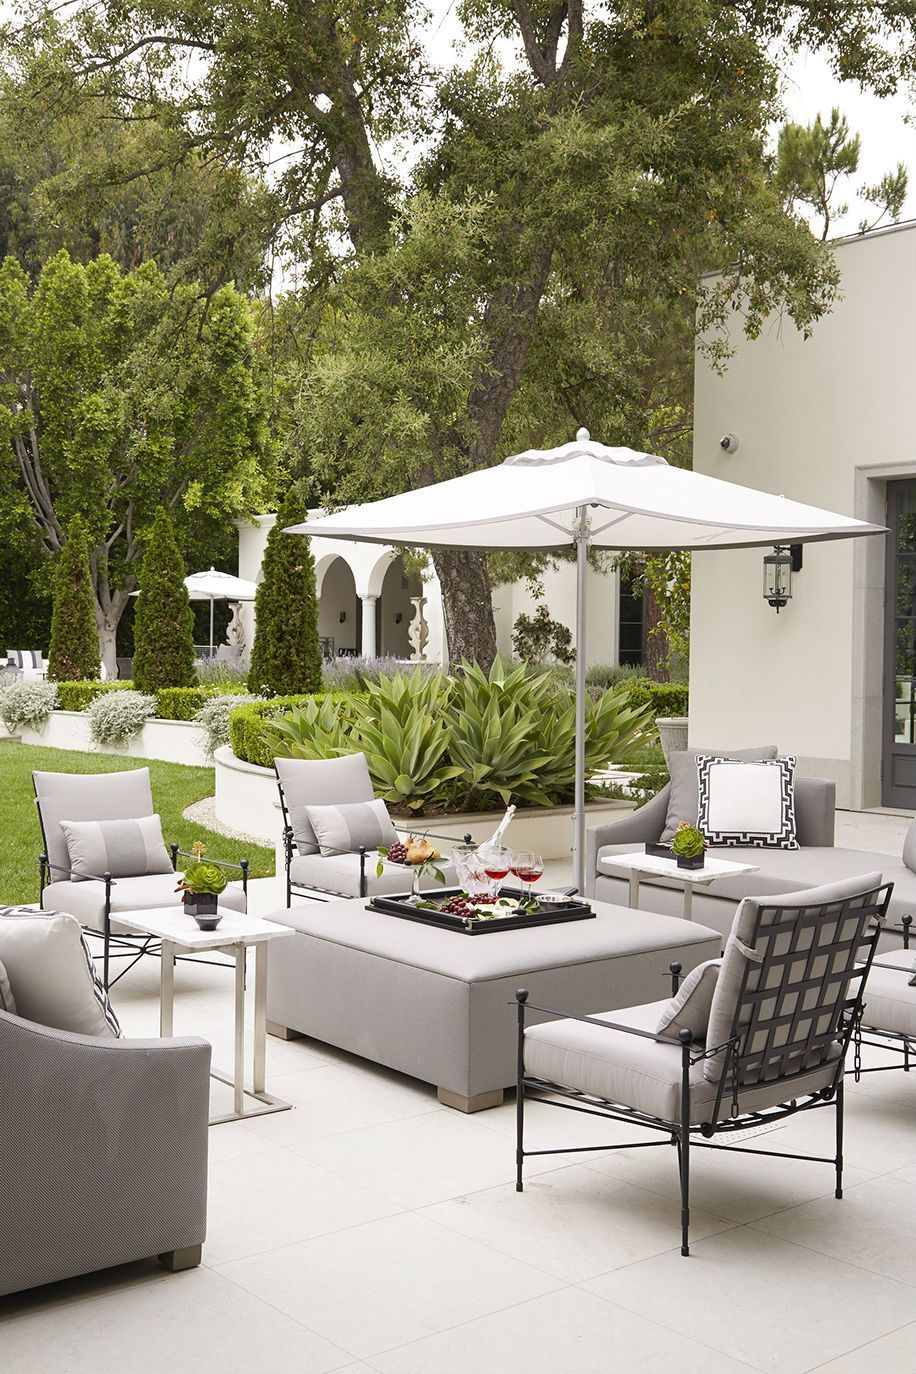 Wonderful Outdoor Living Room Design Ideas For Enjoying Your Days08